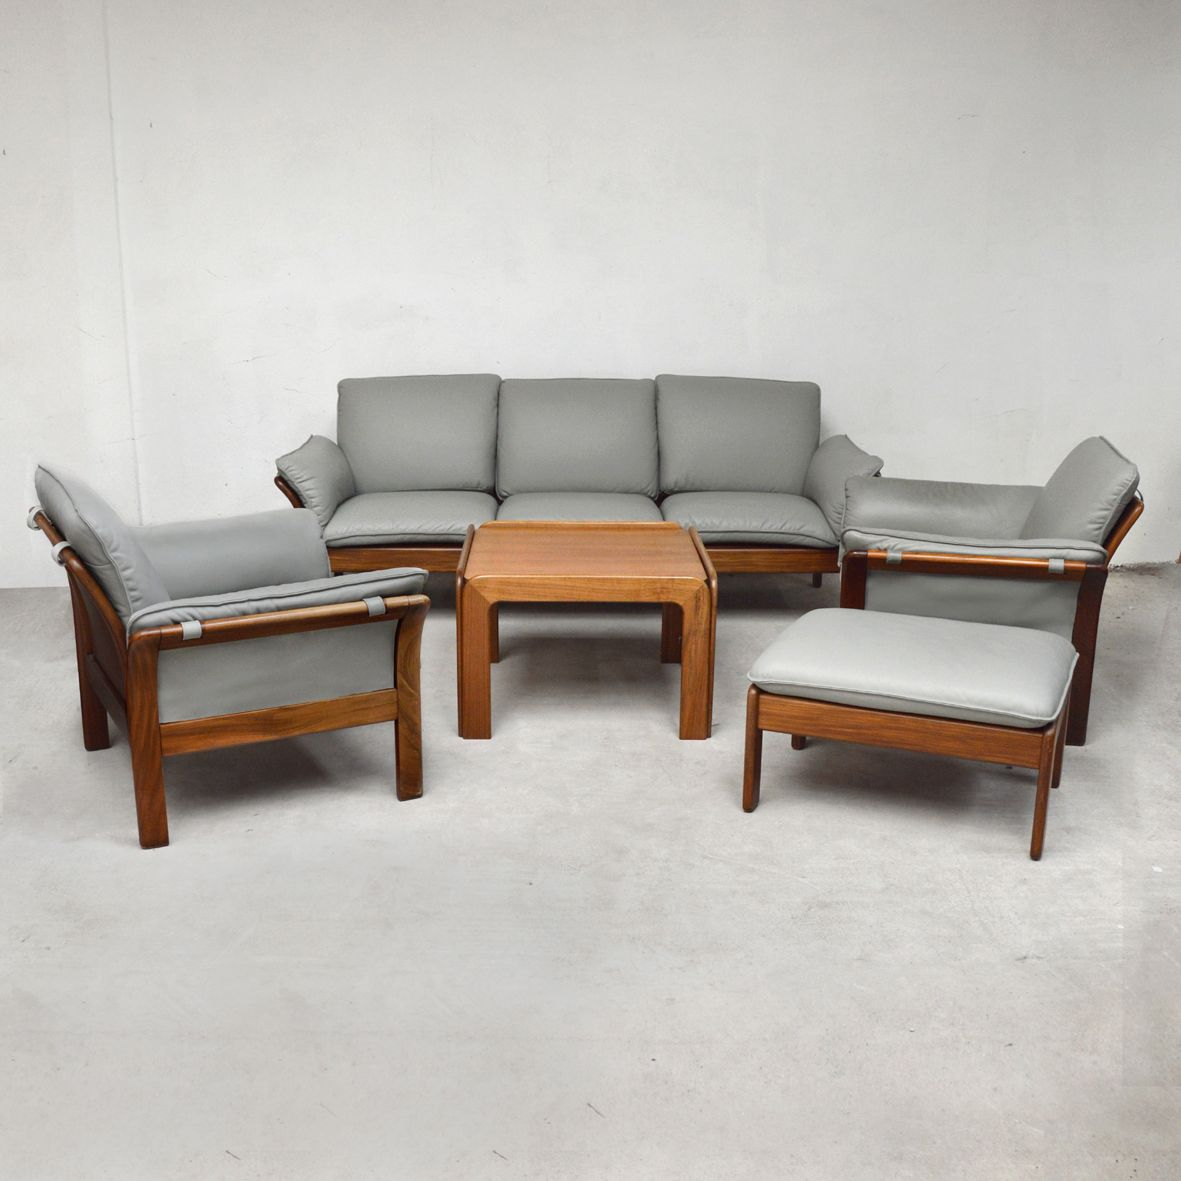 Rosewood & Leather Living Room Set, 1970s for sale at Pamono